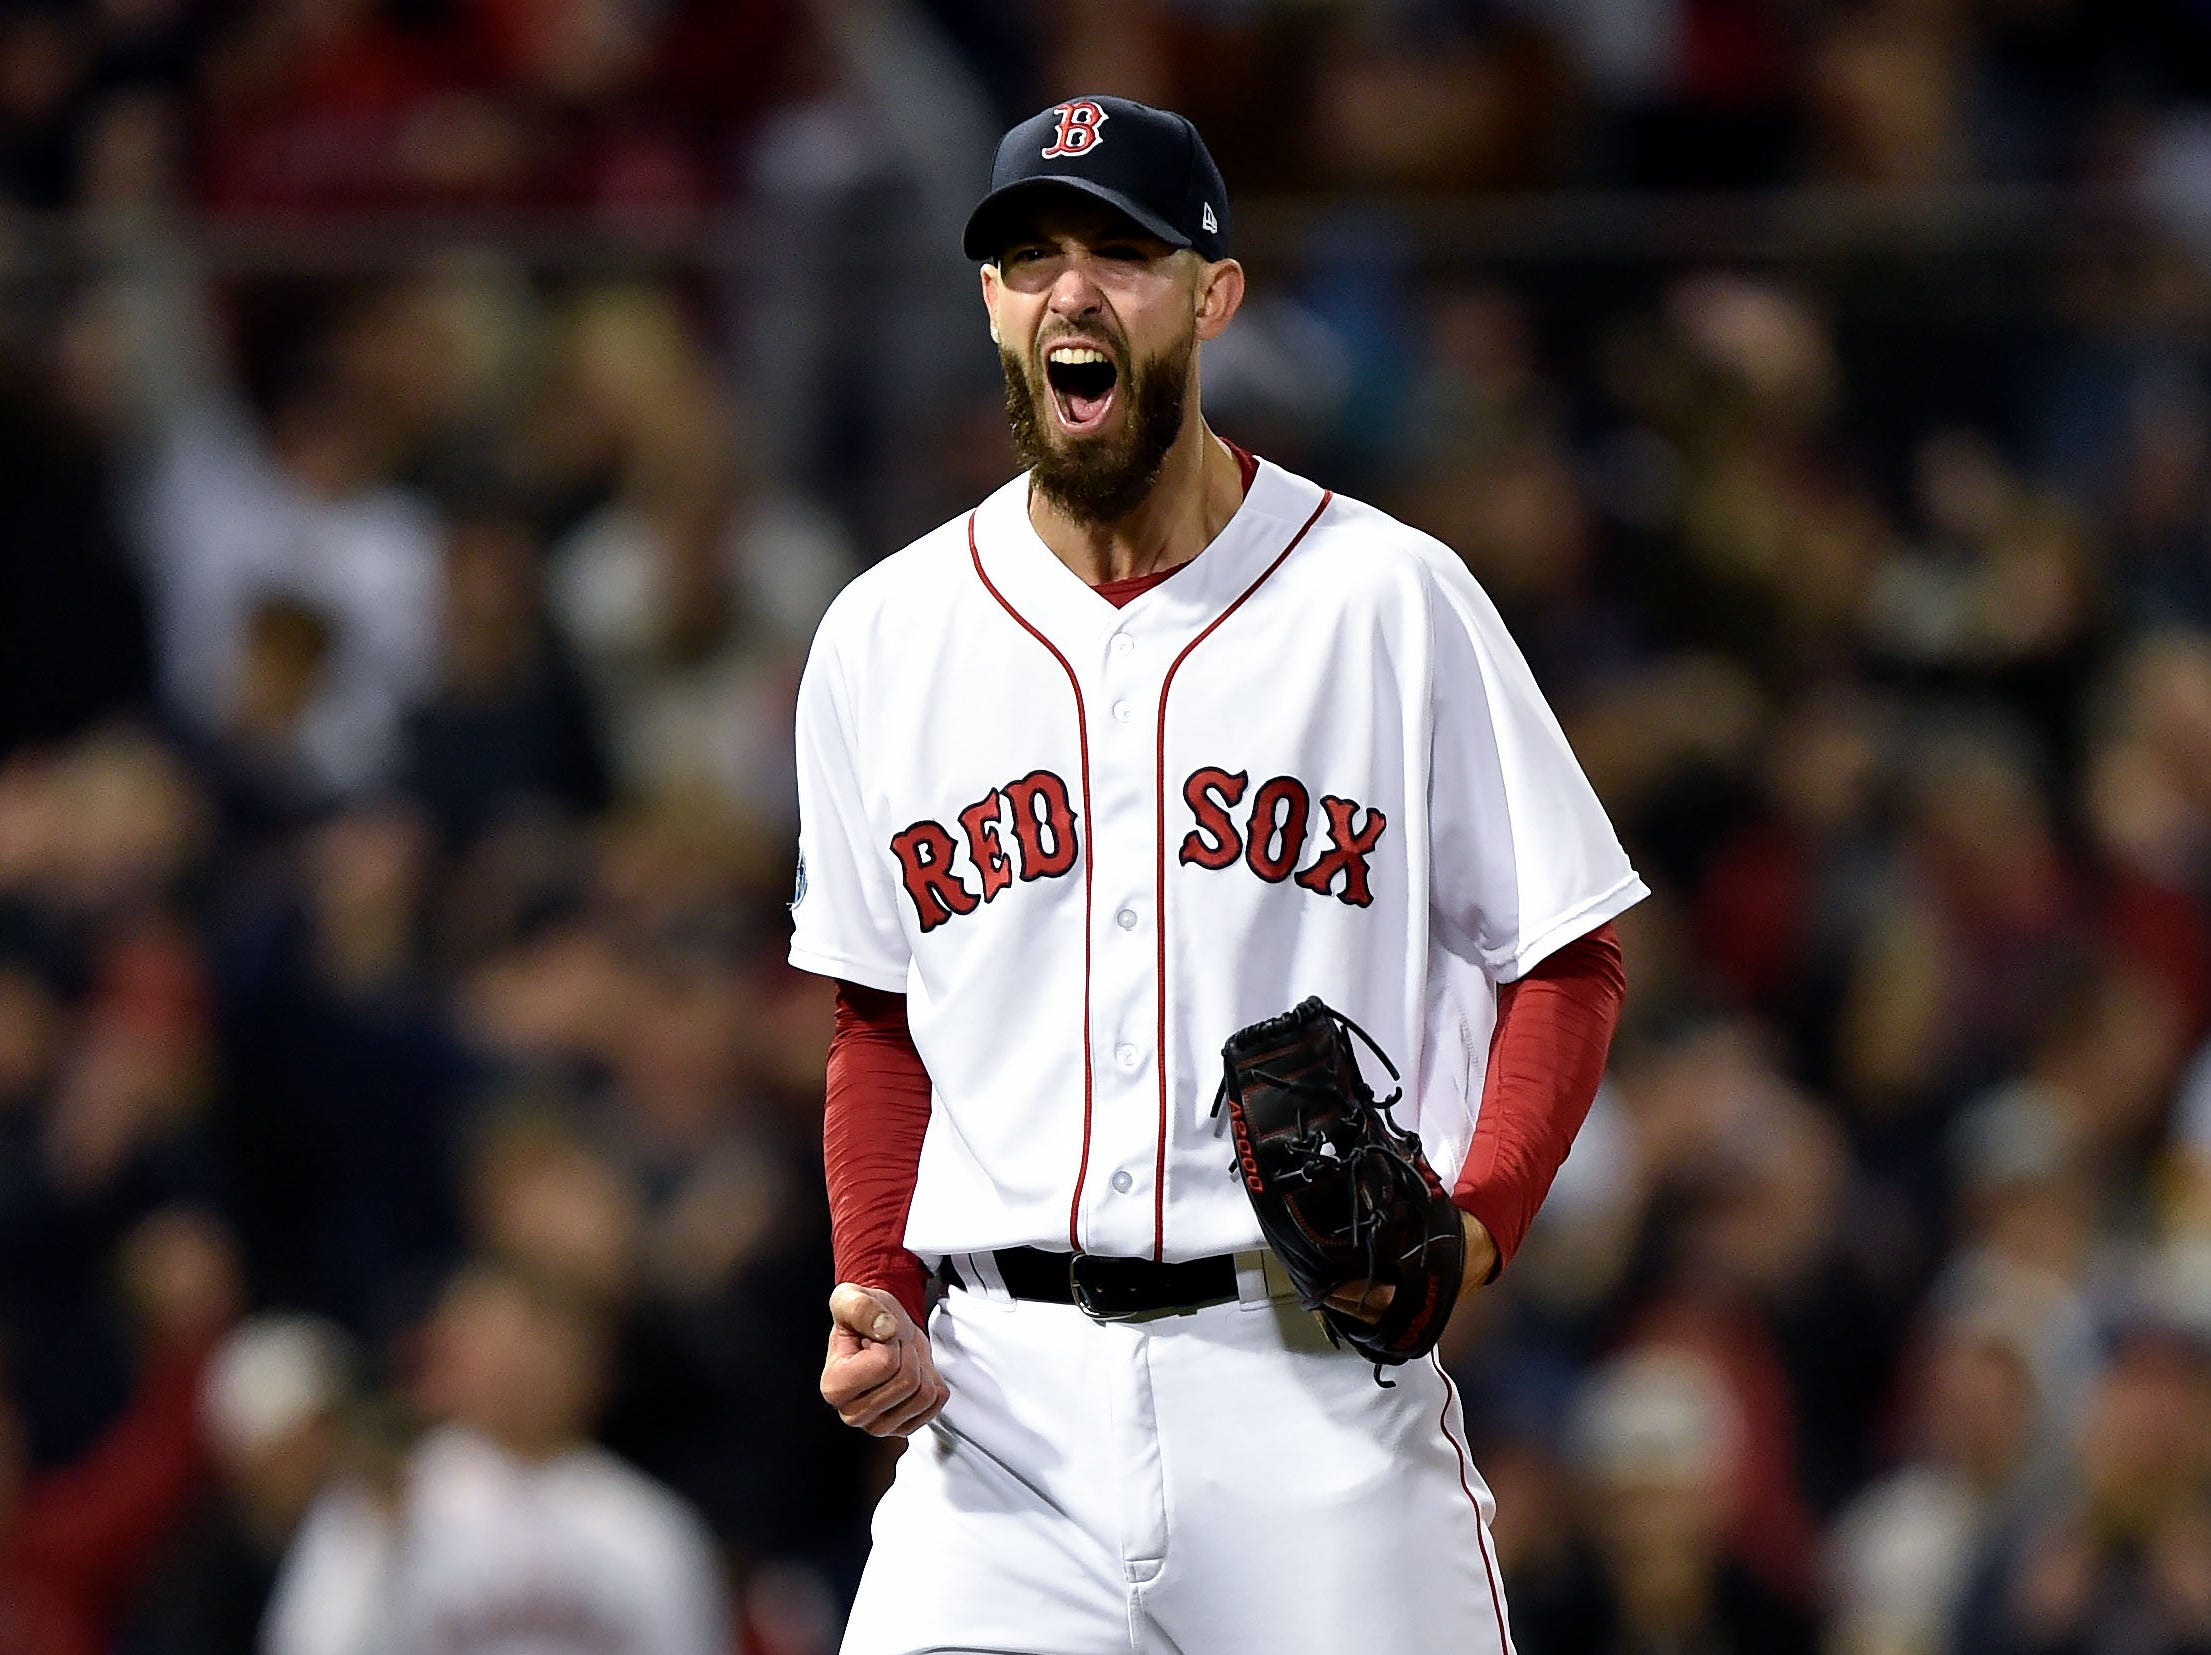 ALCS Game 2: Rick Porcello celebrates after striking out Carlos Correa in the eighth inning.